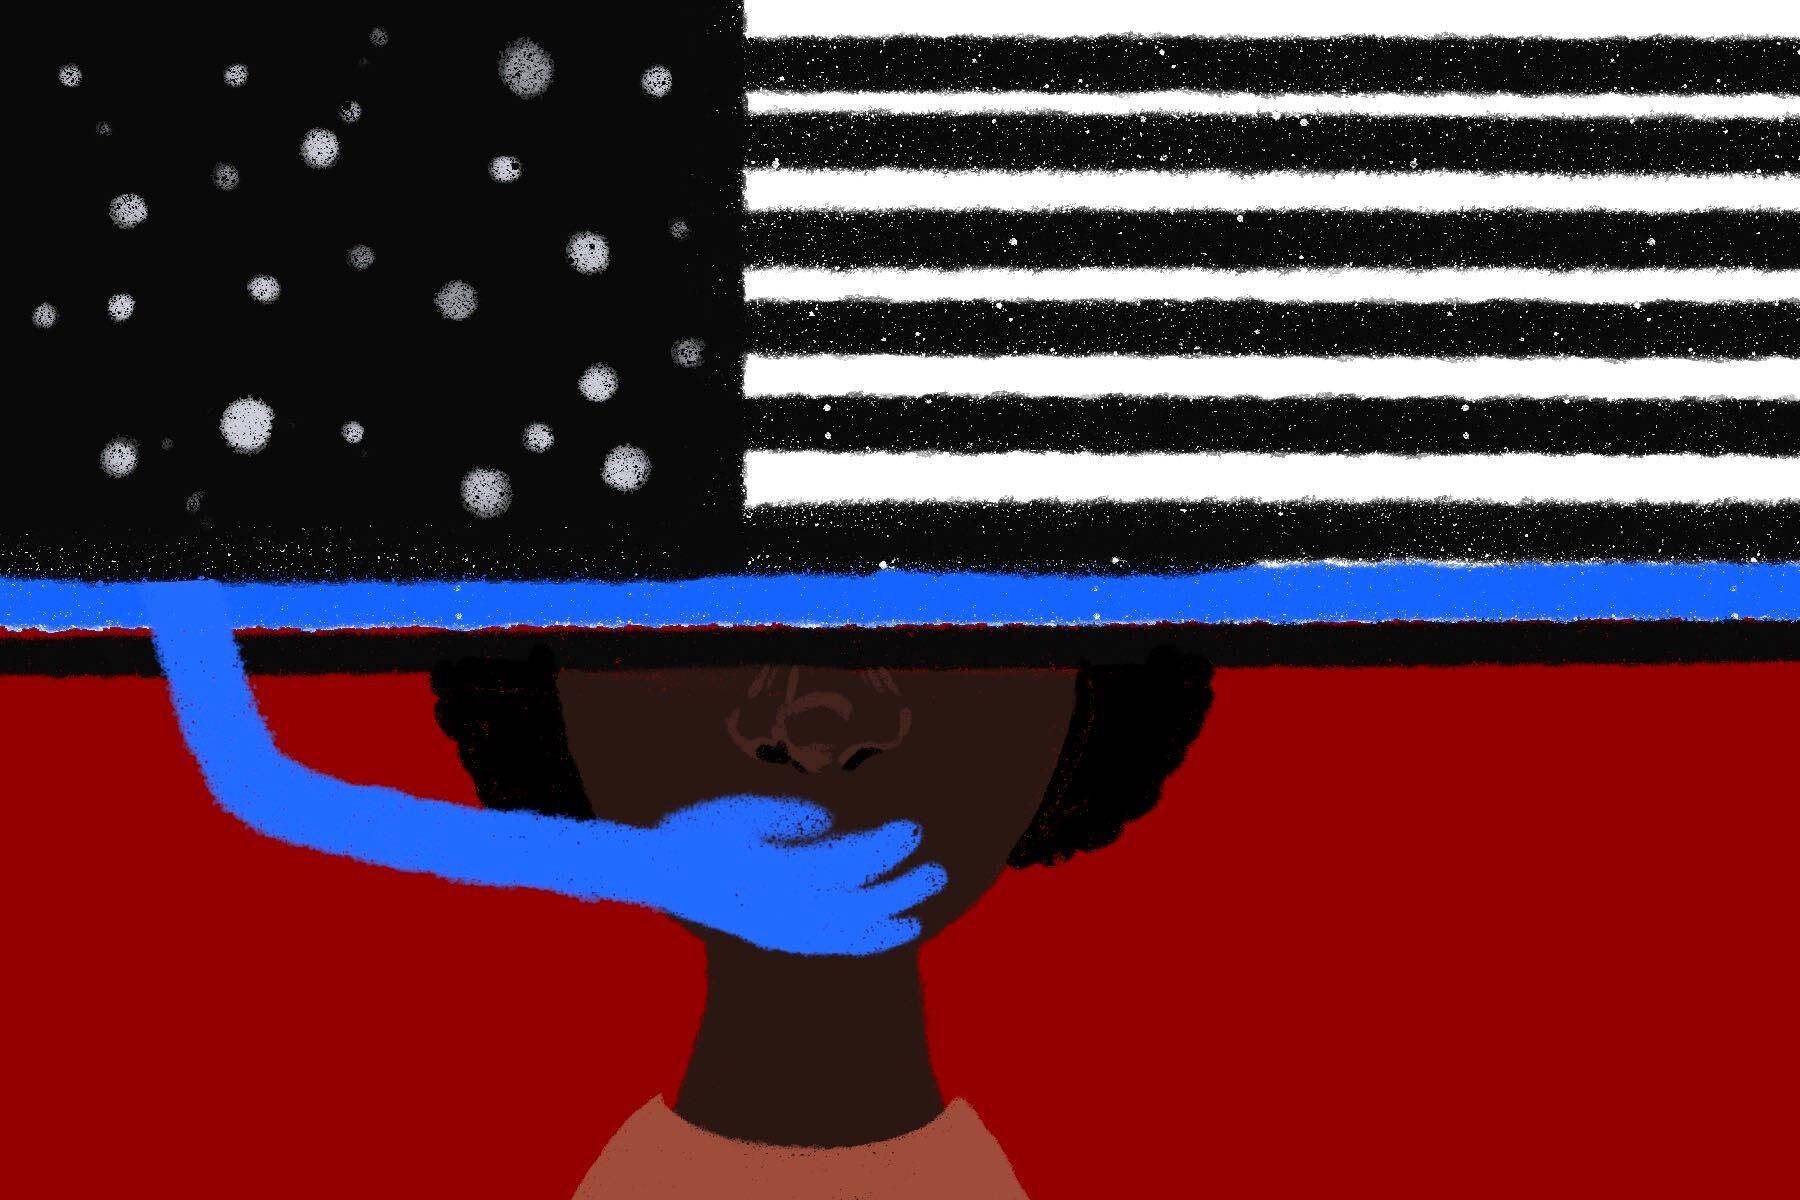 An illustration of the thin blue line flag covering someone's mouth